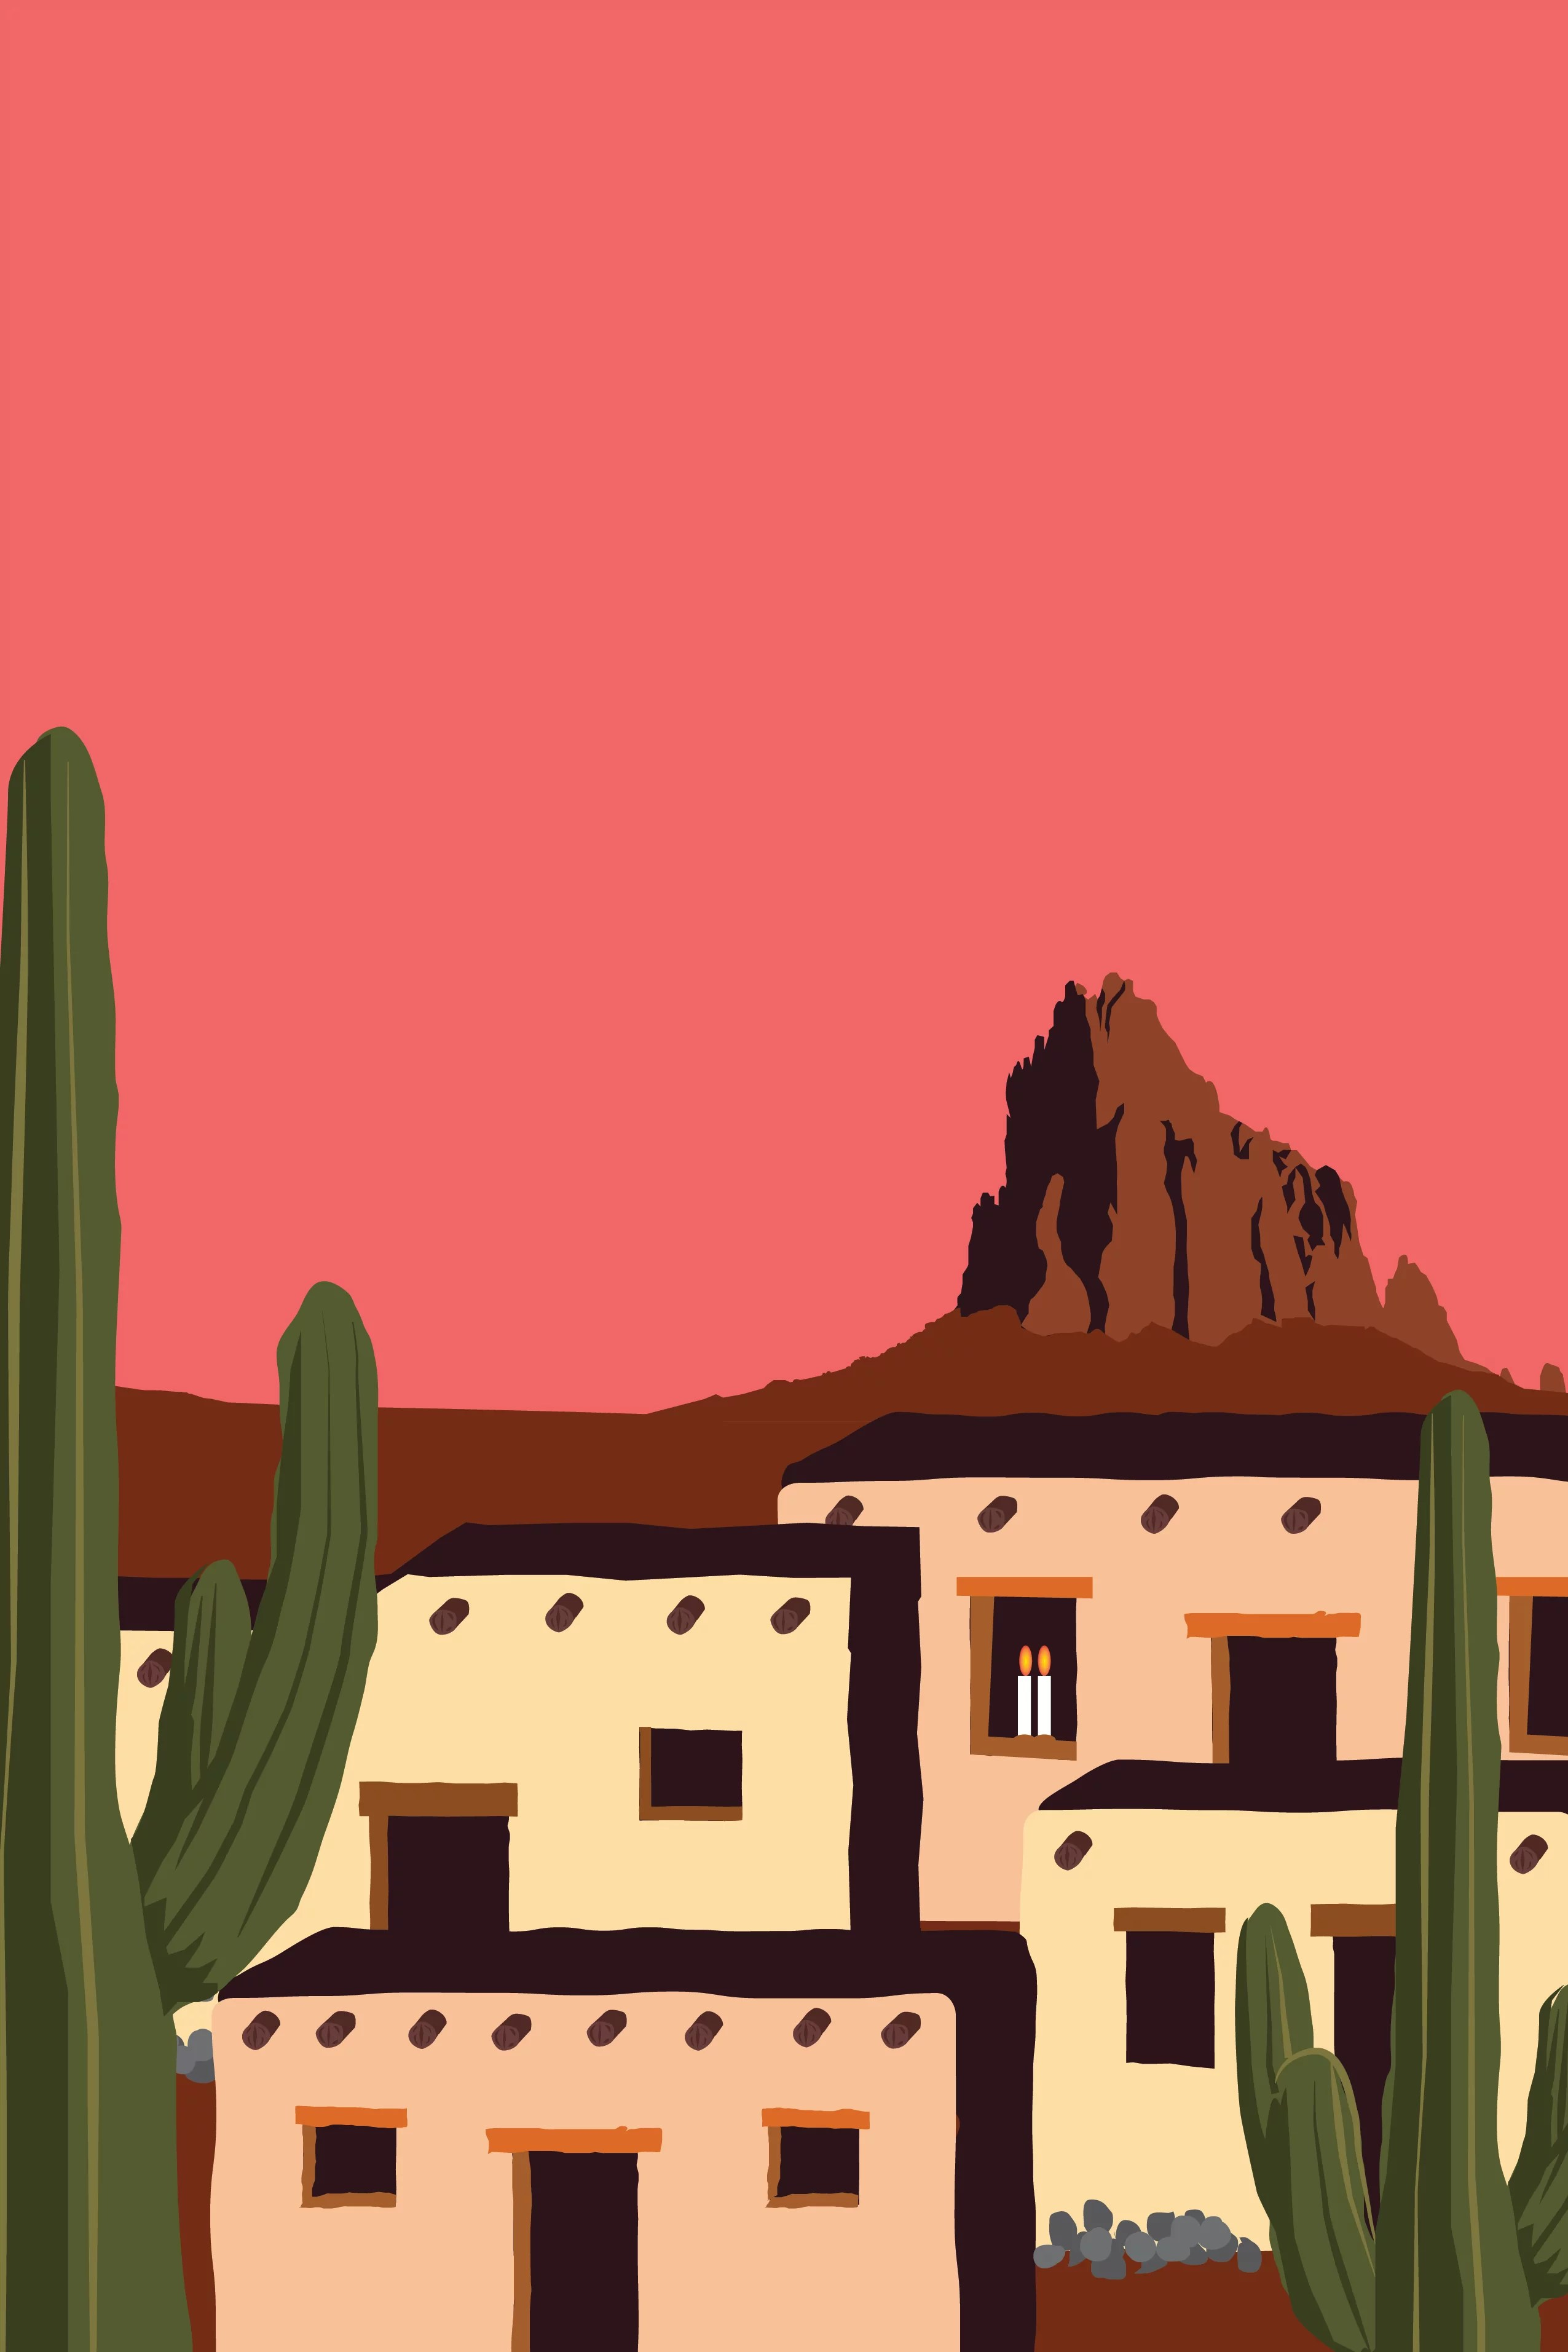 An illustration of adobe houses and cactuses in front of Western mountain ranges.